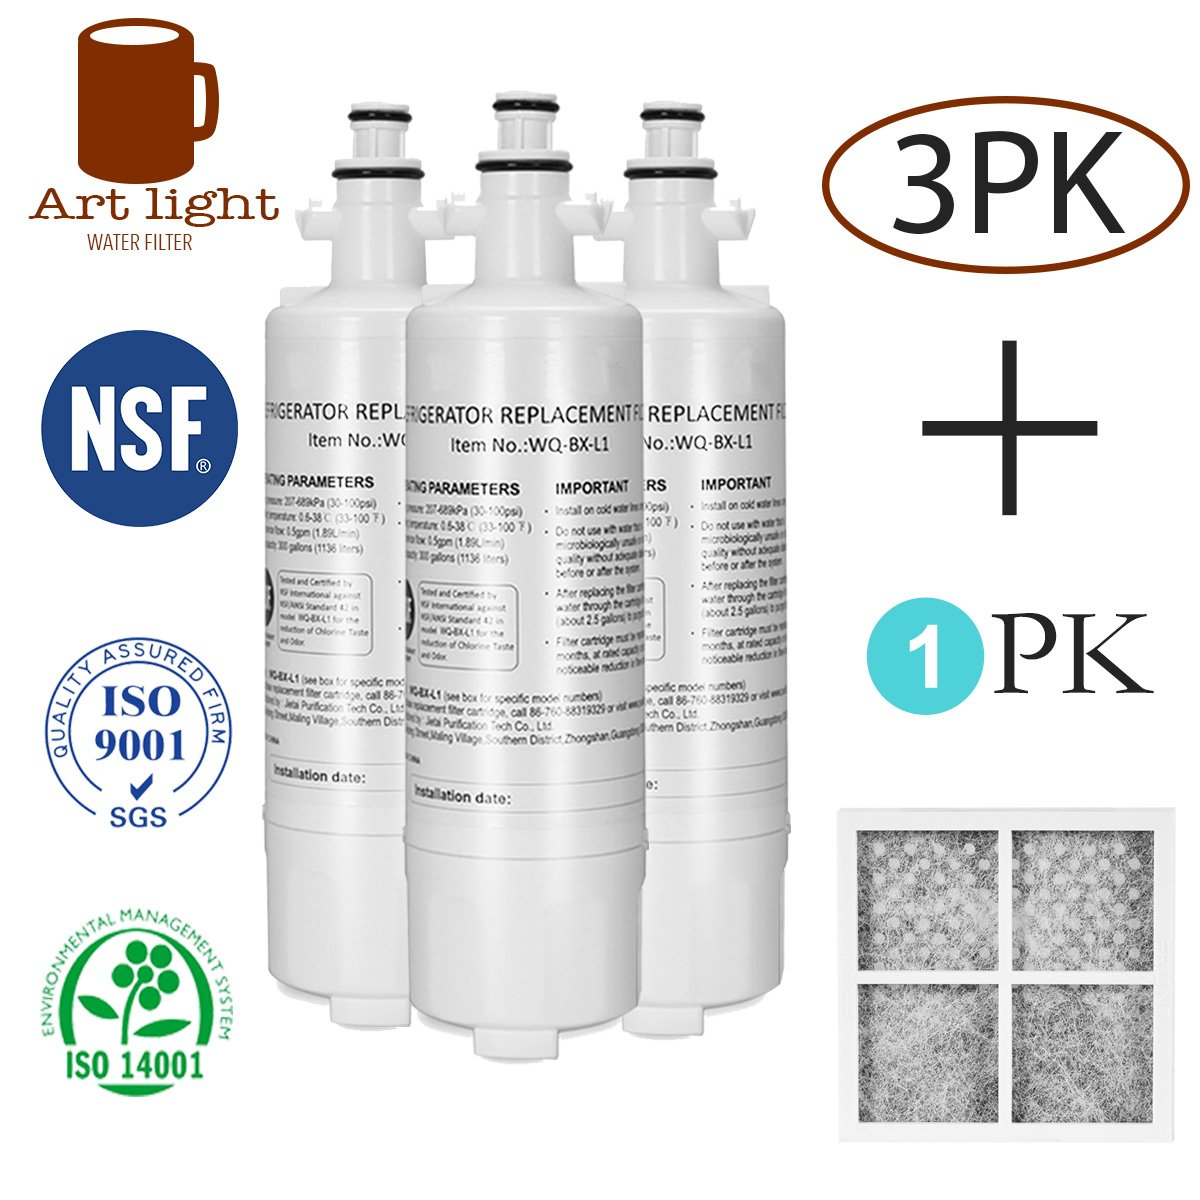 Art light LT700P Kenmore 46-9690 Water Filter 3Pack + Air filter Replacement for LG LT700P Kenmoreclear 46-9690 LG ADQ36006101 ADQ36006102 ADQ36006102S LT700PC SWIFT GREEN SGF-LA07 WATER SENTINEL WSL